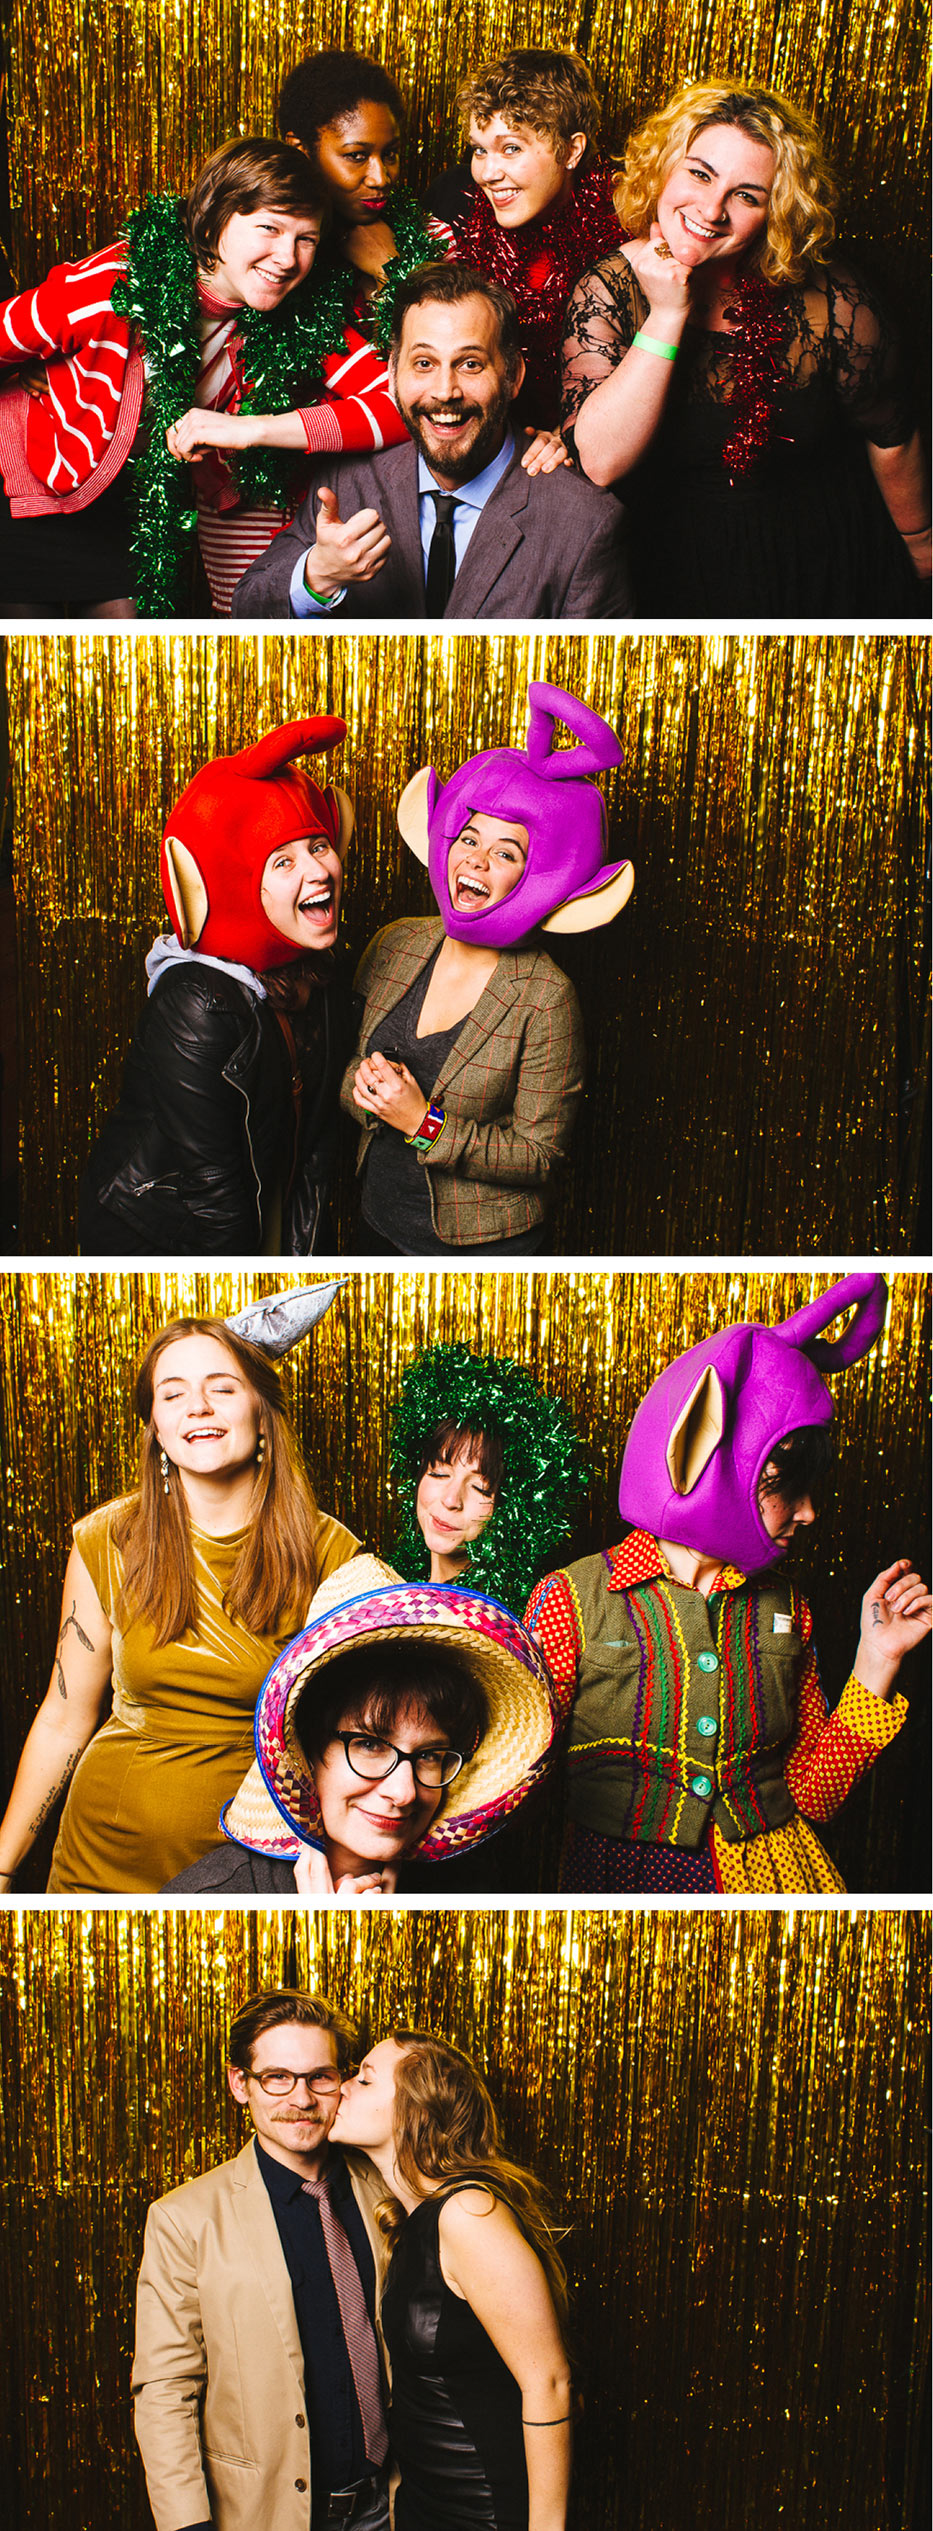 CK-Photo-Nashville-Photobooth-B1.jpg